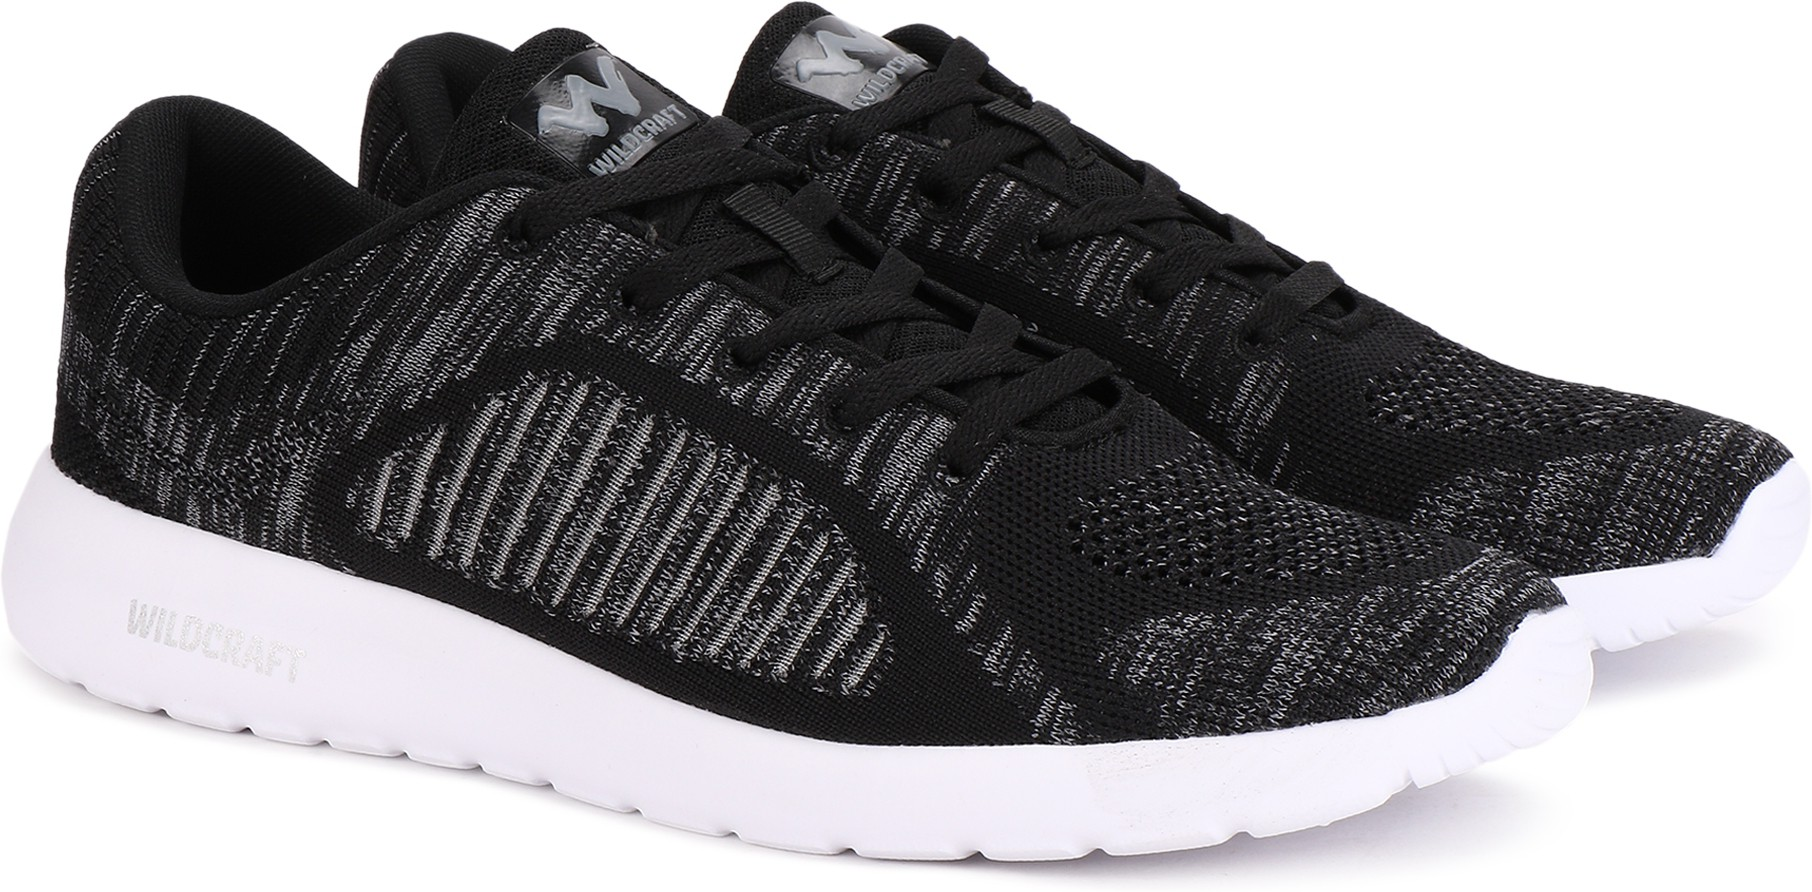 Wildcraft Beckon Knit Running Shoes For Men (Black, Grey)